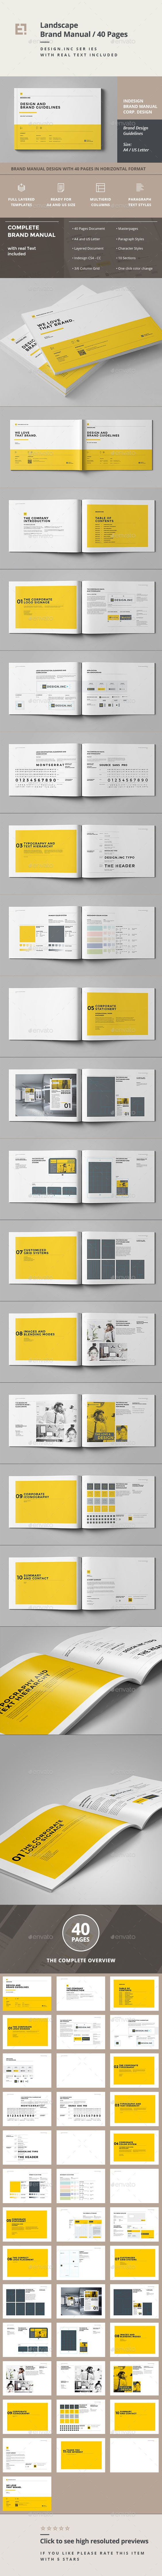 Brand Manual Template #design Download: http://graphicriver.net/item/brand-manual/11805697?ref=ksioks: